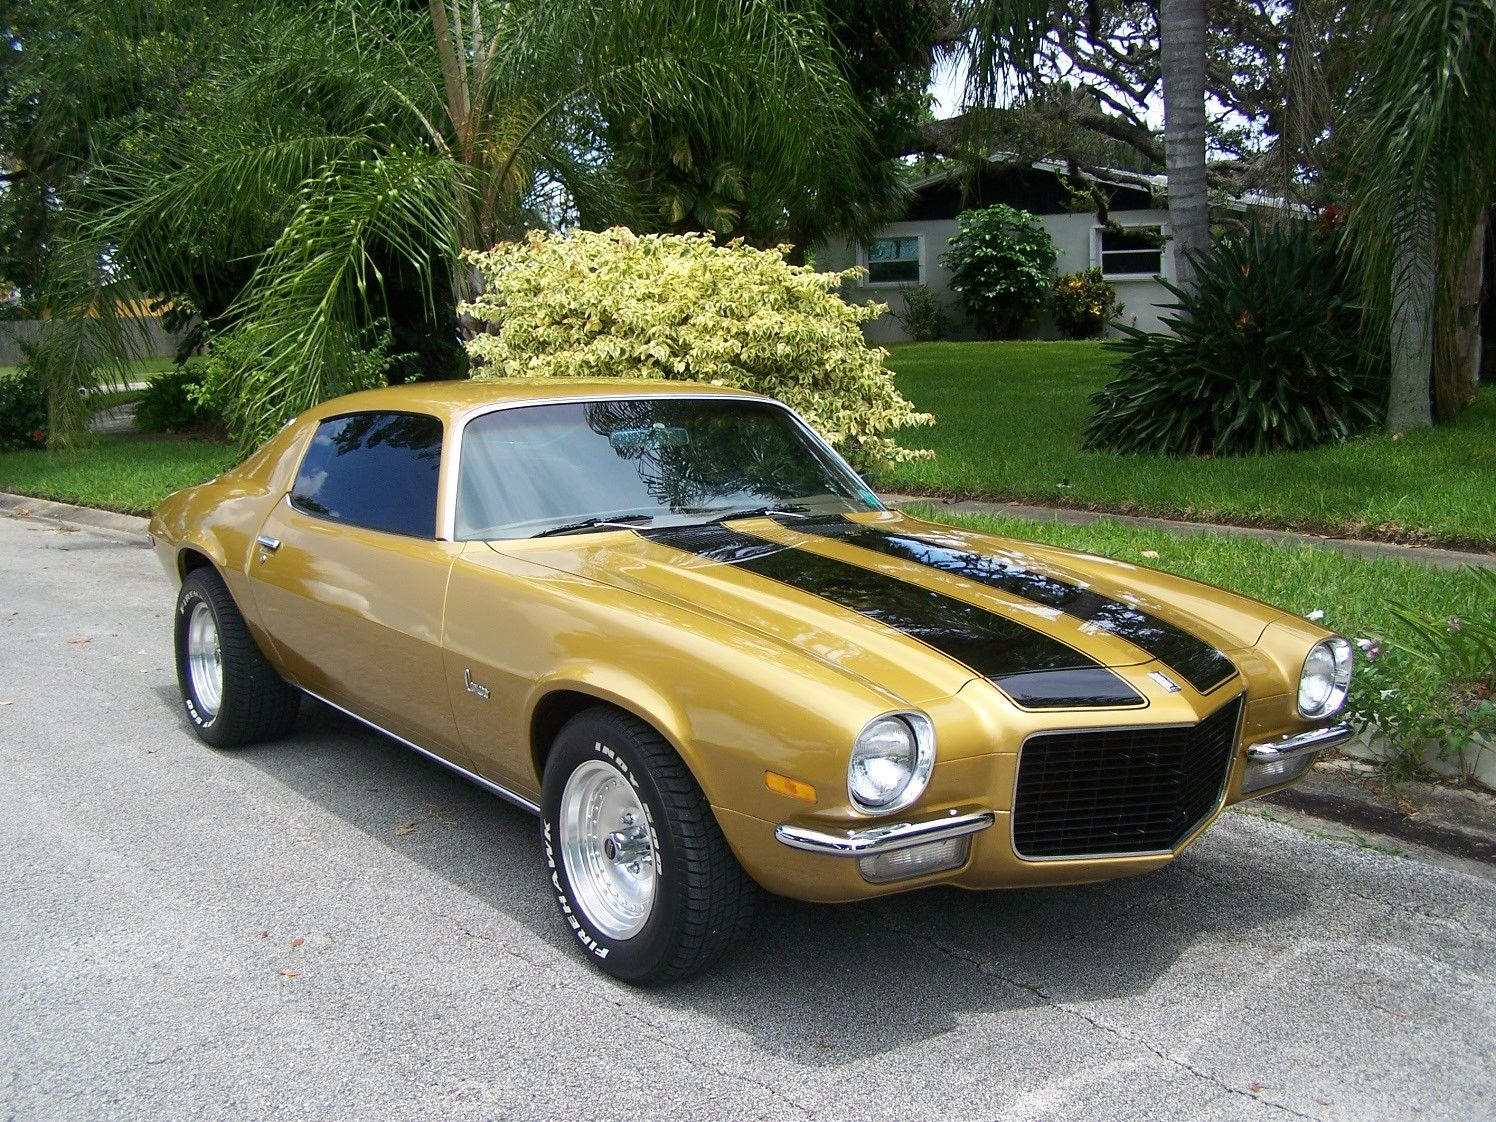 1970 camaro split bumper rs style oklahoma car very nice classic chevrolet camaro 1970. Black Bedroom Furniture Sets. Home Design Ideas